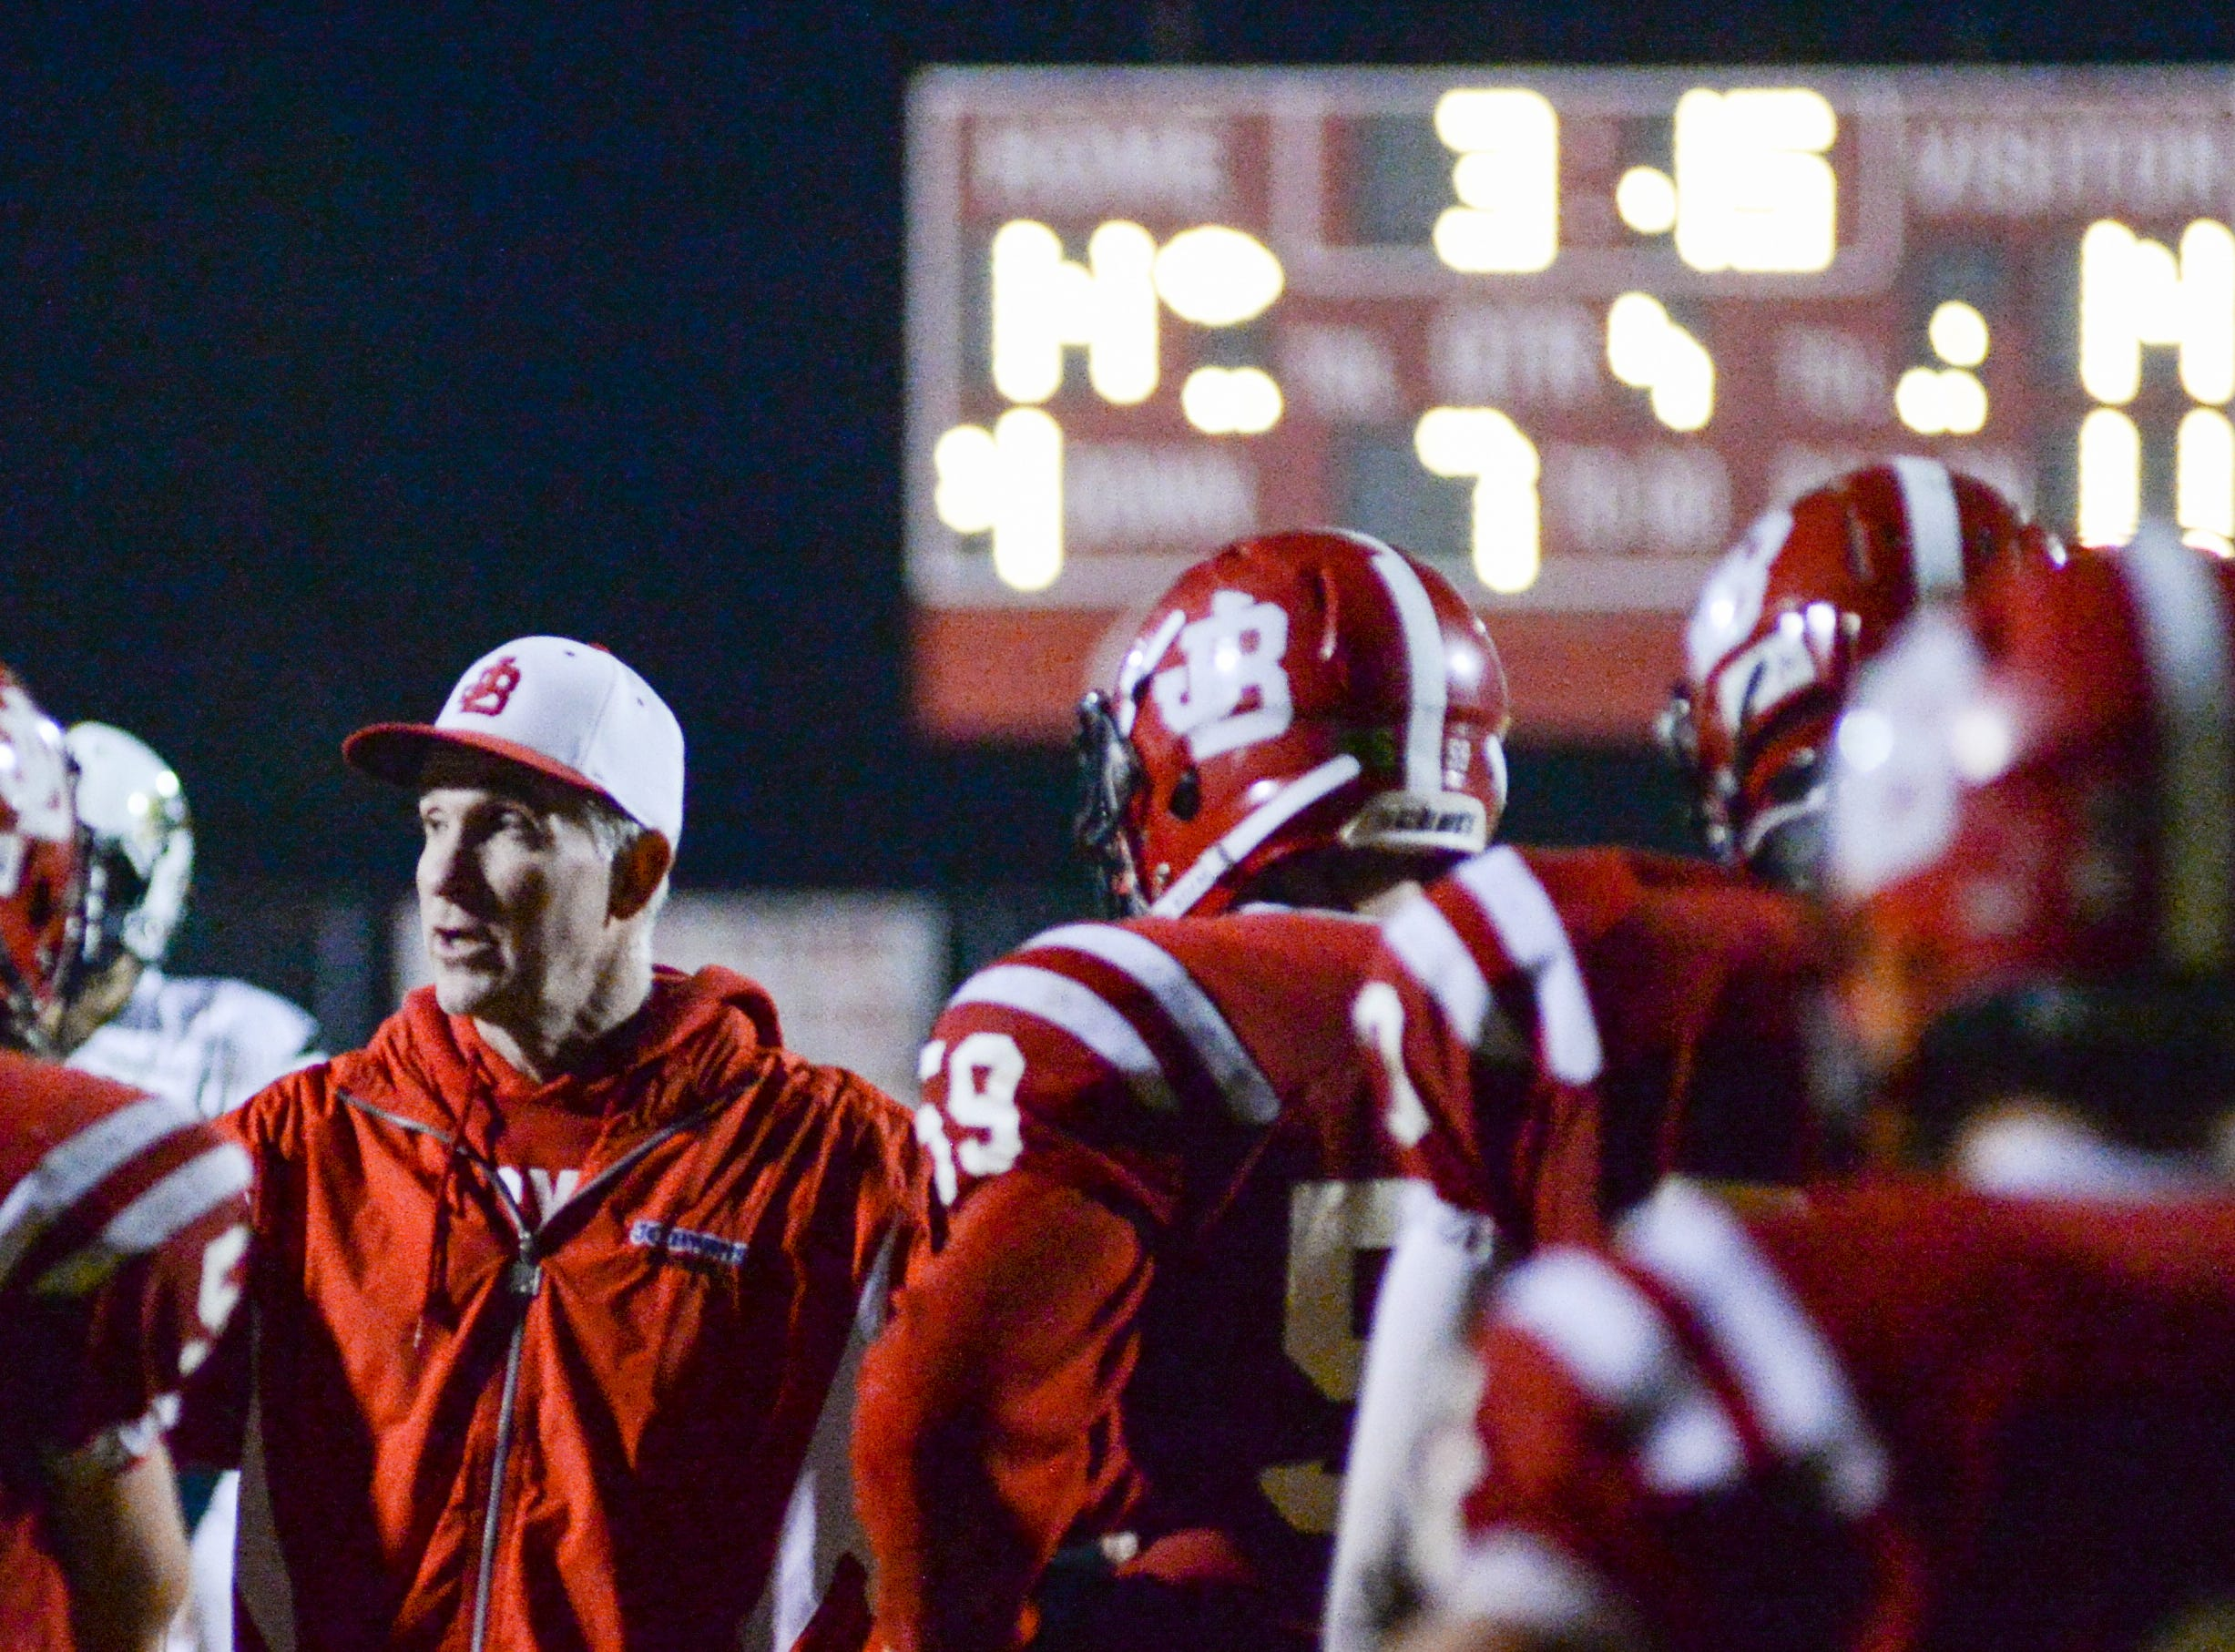 Jo Byrns High School coach Tom Adkins talks with players during a pause in the action due to an injury during a game against Lookout Valley at Jo Byrns High School on Friday, Nov. 2.